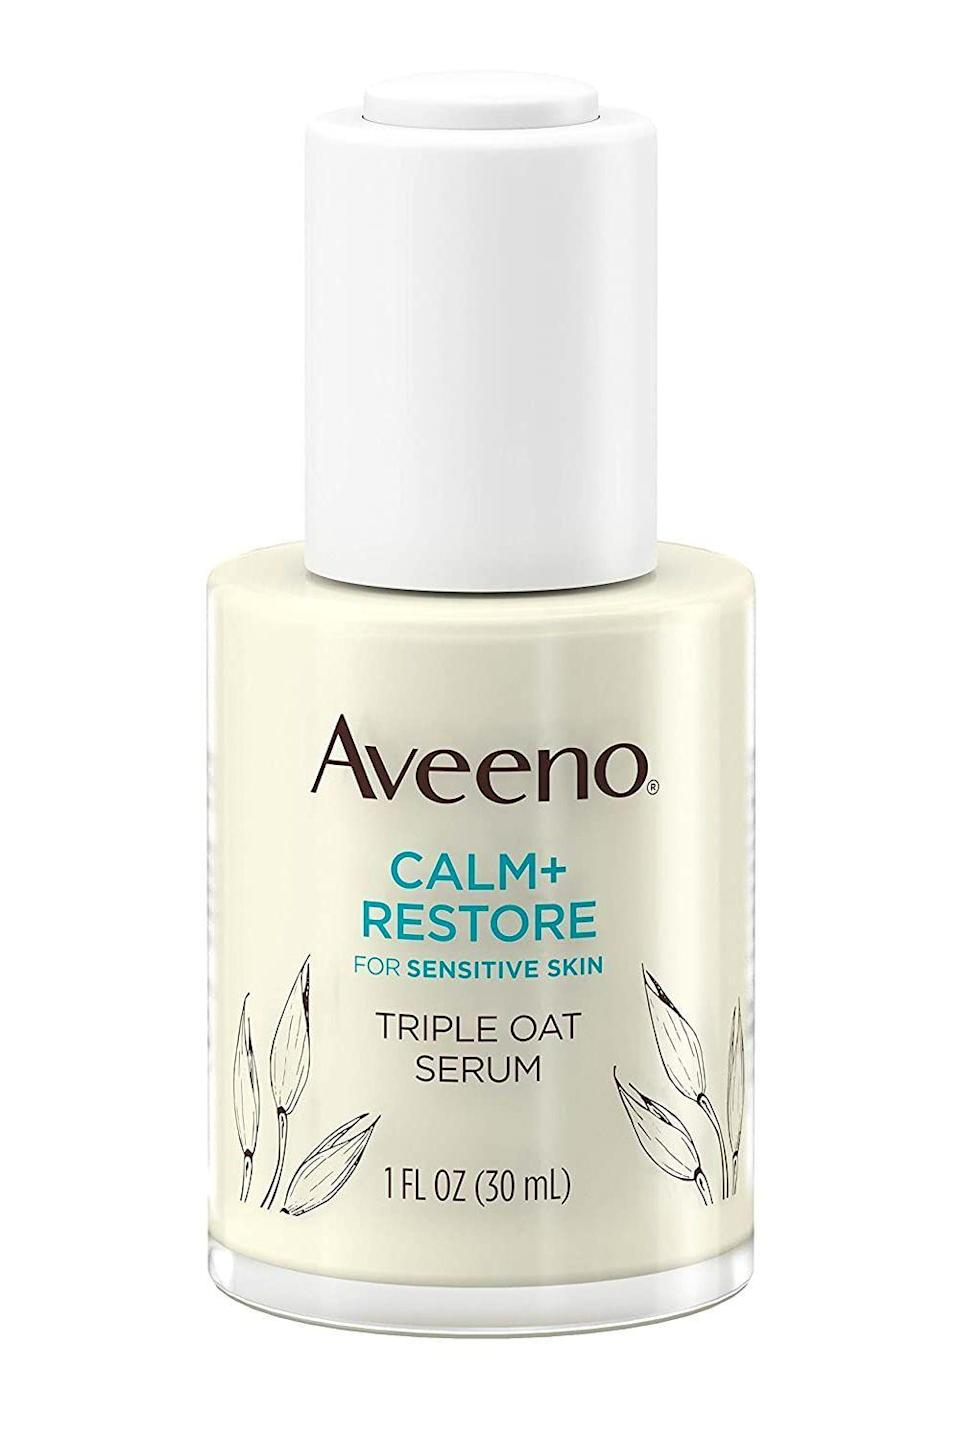 """<p><strong>Aveeno</strong></p><p>amazon.com</p><p><strong>$17.97</strong></p><p><a href=""""https://www.amazon.com/dp/B08D9MVRXT?tag=syn-yahoo-20&ascsubtag=%5Bartid%7C10049.g.35089763%5Bsrc%7Cyahoo-us"""" rel=""""nofollow noopener"""" target=""""_blank"""" data-ylk=""""slk:Shop Now"""" class=""""link rapid-noclick-resp"""">Shop Now</a></p><p>Designed for the most sensitive of skin types, this <a href=""""https://www.cosmopolitan.com/style-beauty/beauty/g29371741/best-drugstore-face-serum/"""" rel=""""nofollow noopener"""" target=""""_blank"""" data-ylk=""""slk:drugstore face serum"""" class=""""link rapid-noclick-resp"""">drugstore face serum </a>is<strong> free of potential irritants (like fragrance, alcohols, and dyes)</strong> and filled with a blend of prebiotics, oats, and feverfew extract to restore your skin's protective barrier, tone down redness, and eliminate dryness too.</p>"""